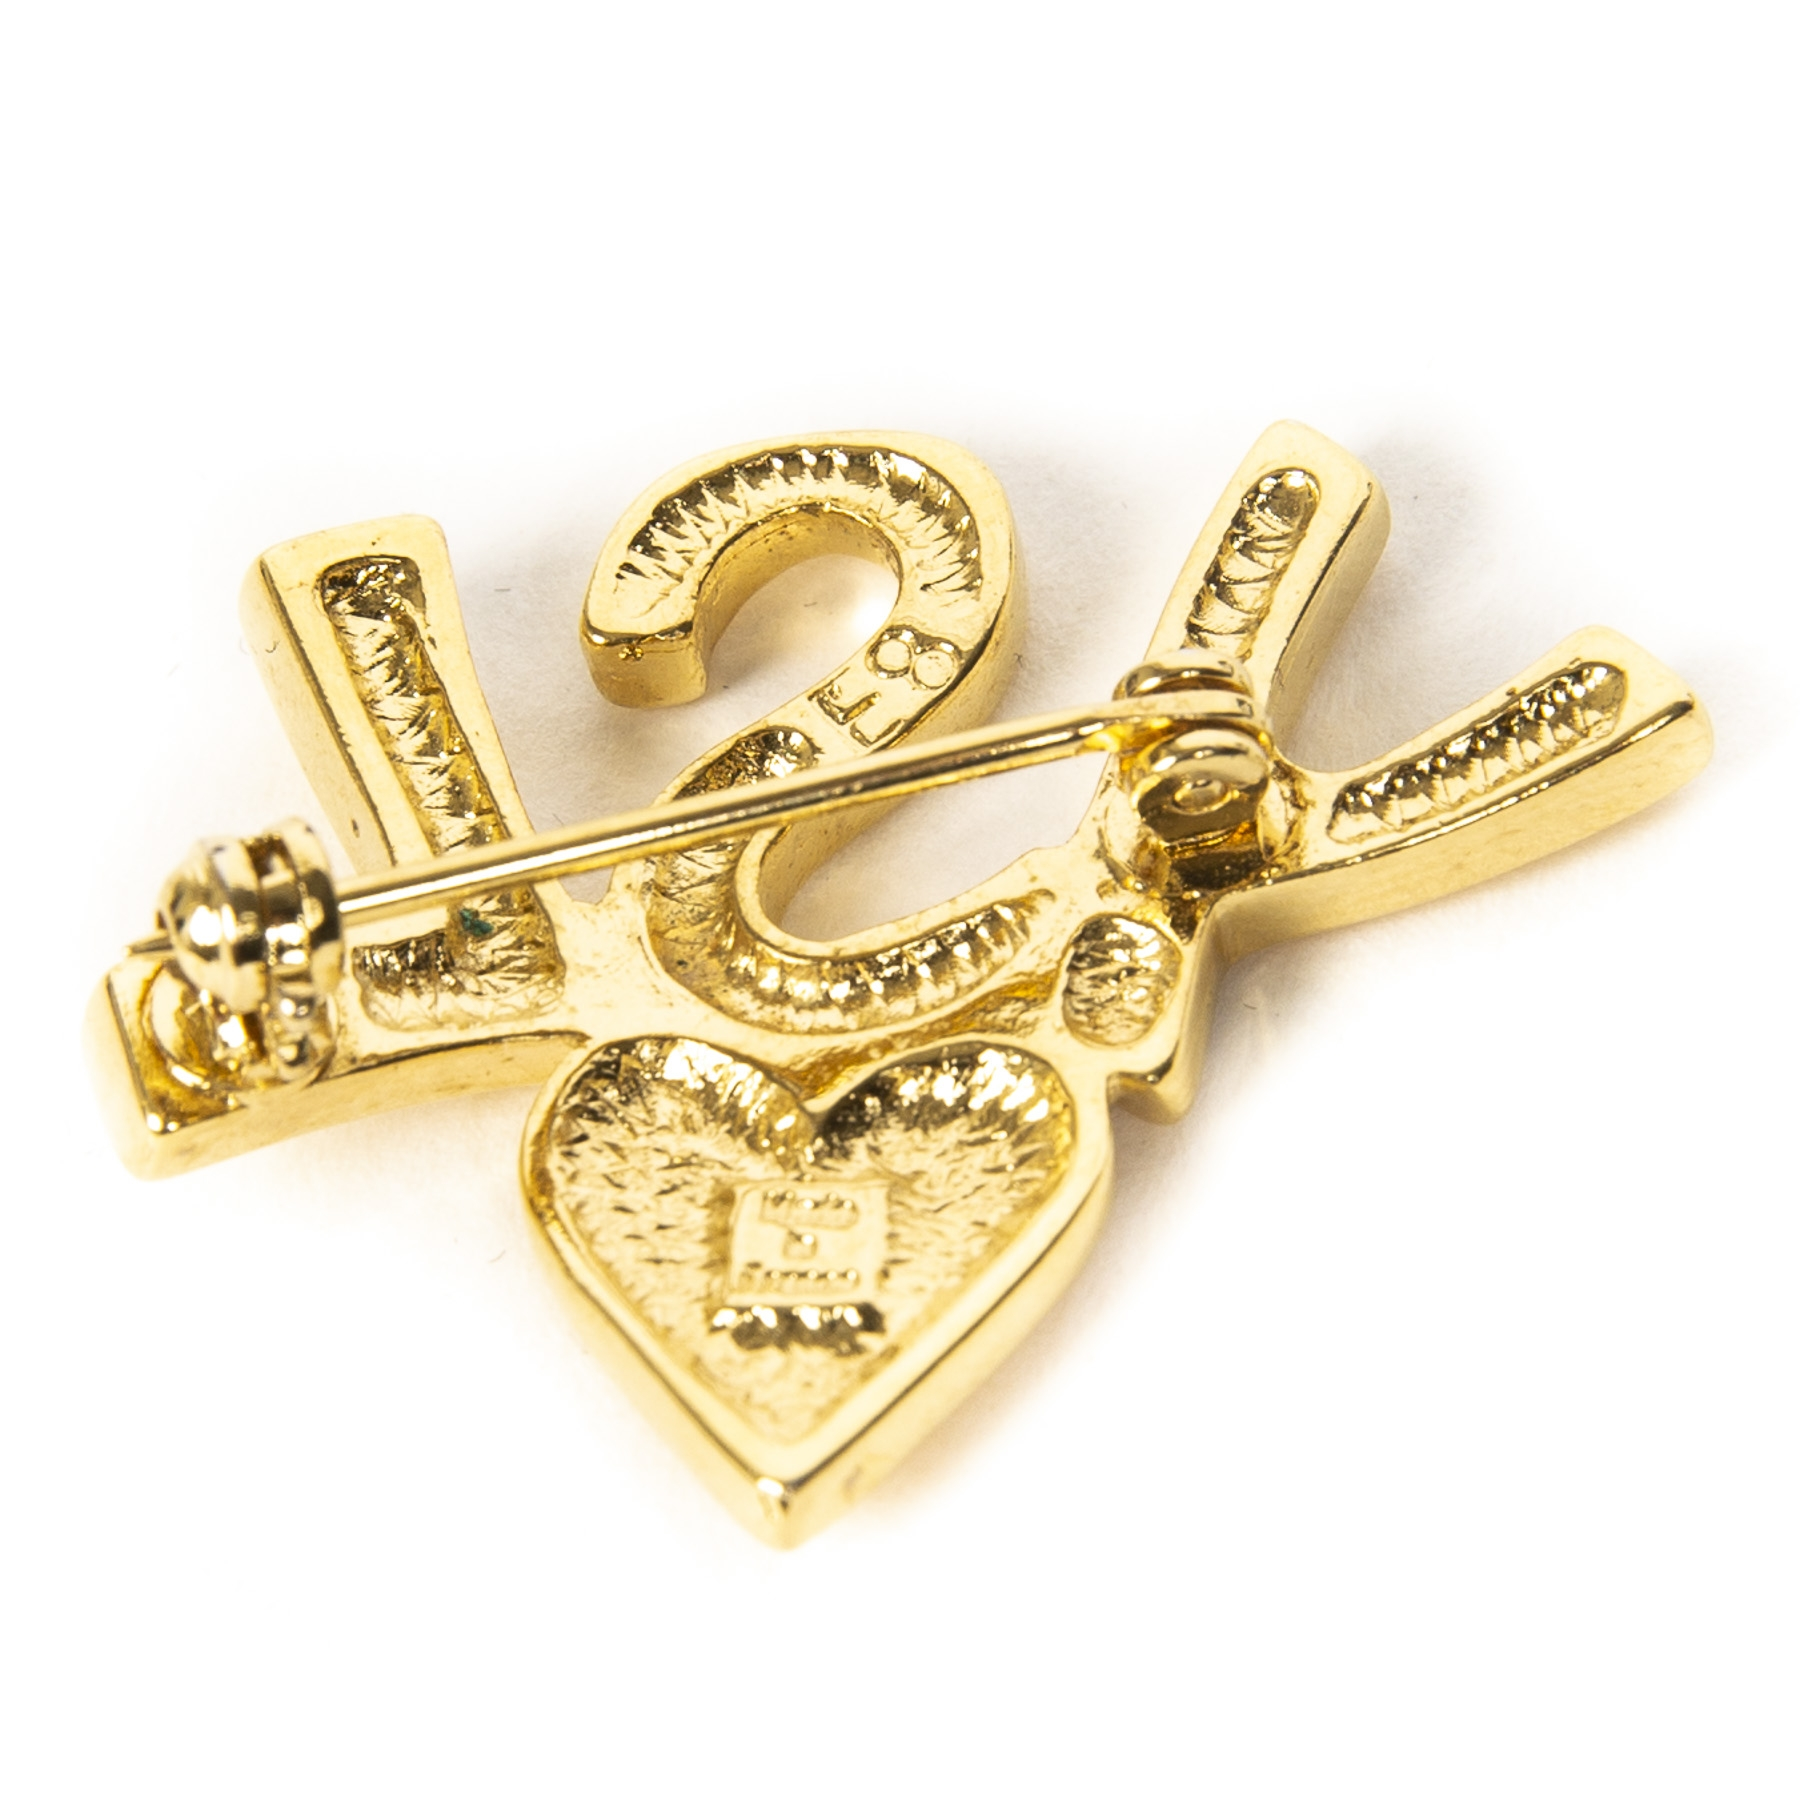 YSL Gold Logo Heart Brooch